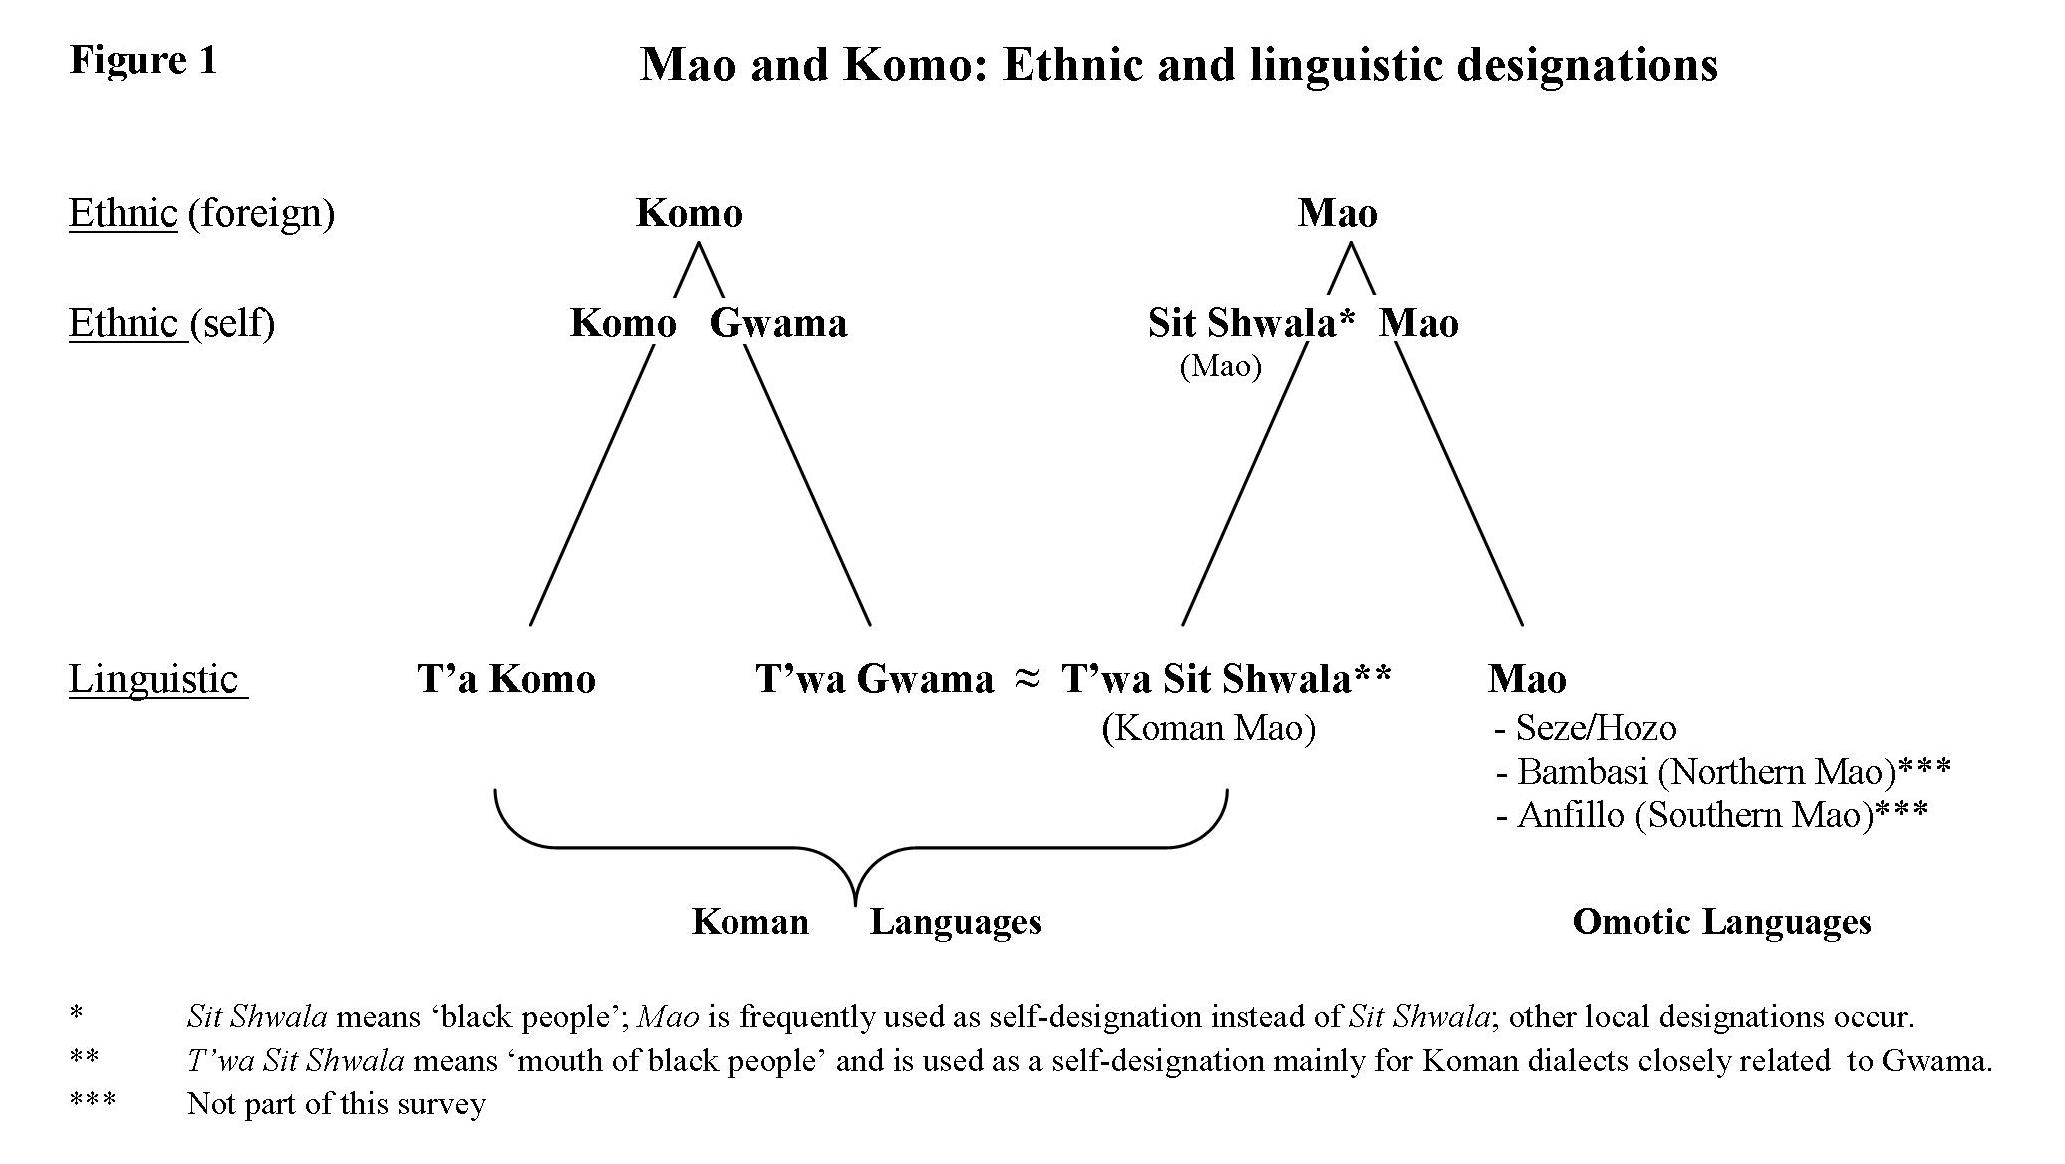 The mao and komo languages in the begi tongo area in western figure1 buycottarizona Image collections